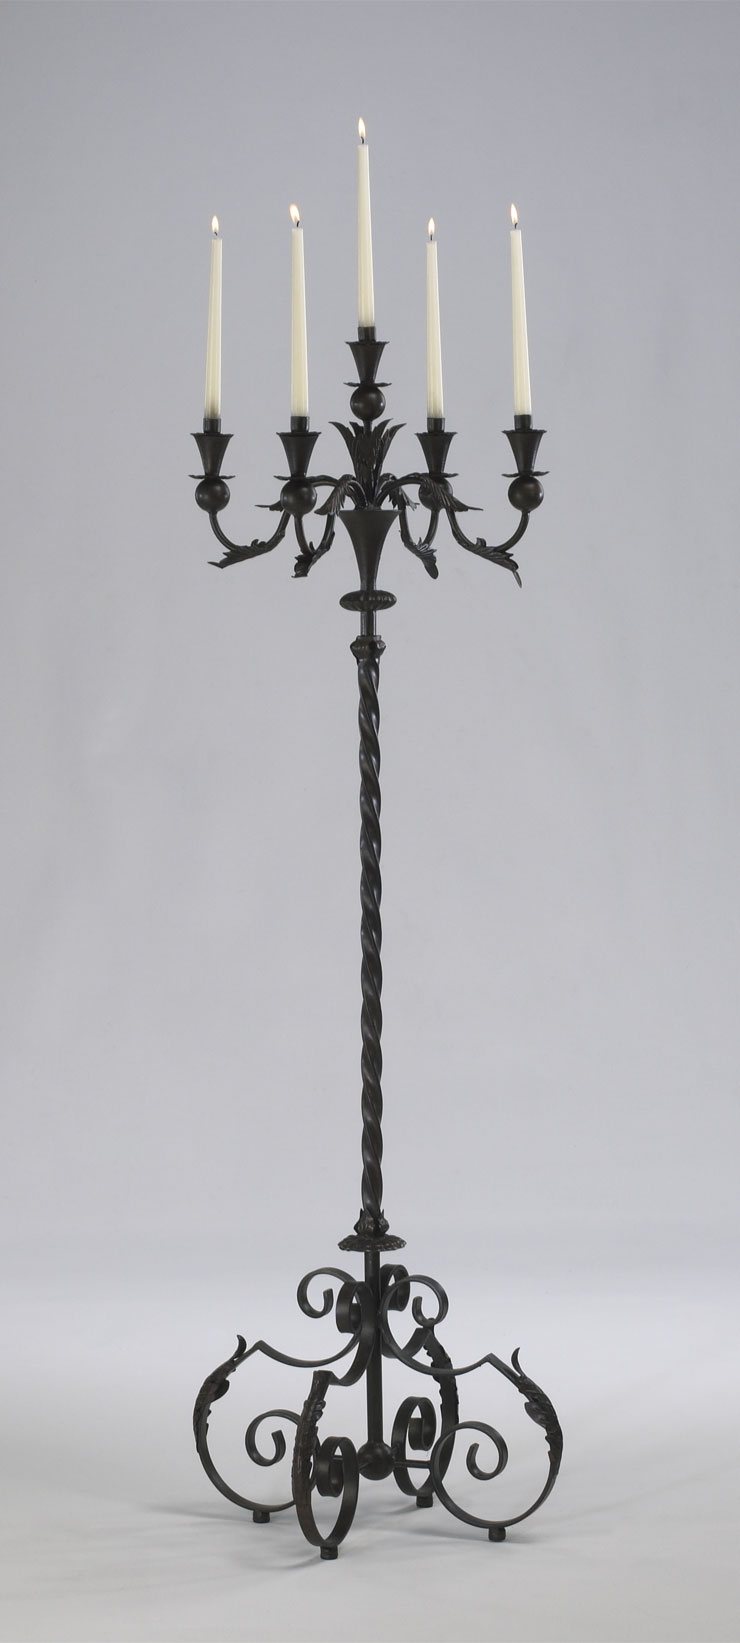 Tall wrought iron candle holders - Floor Stand Candle Holder